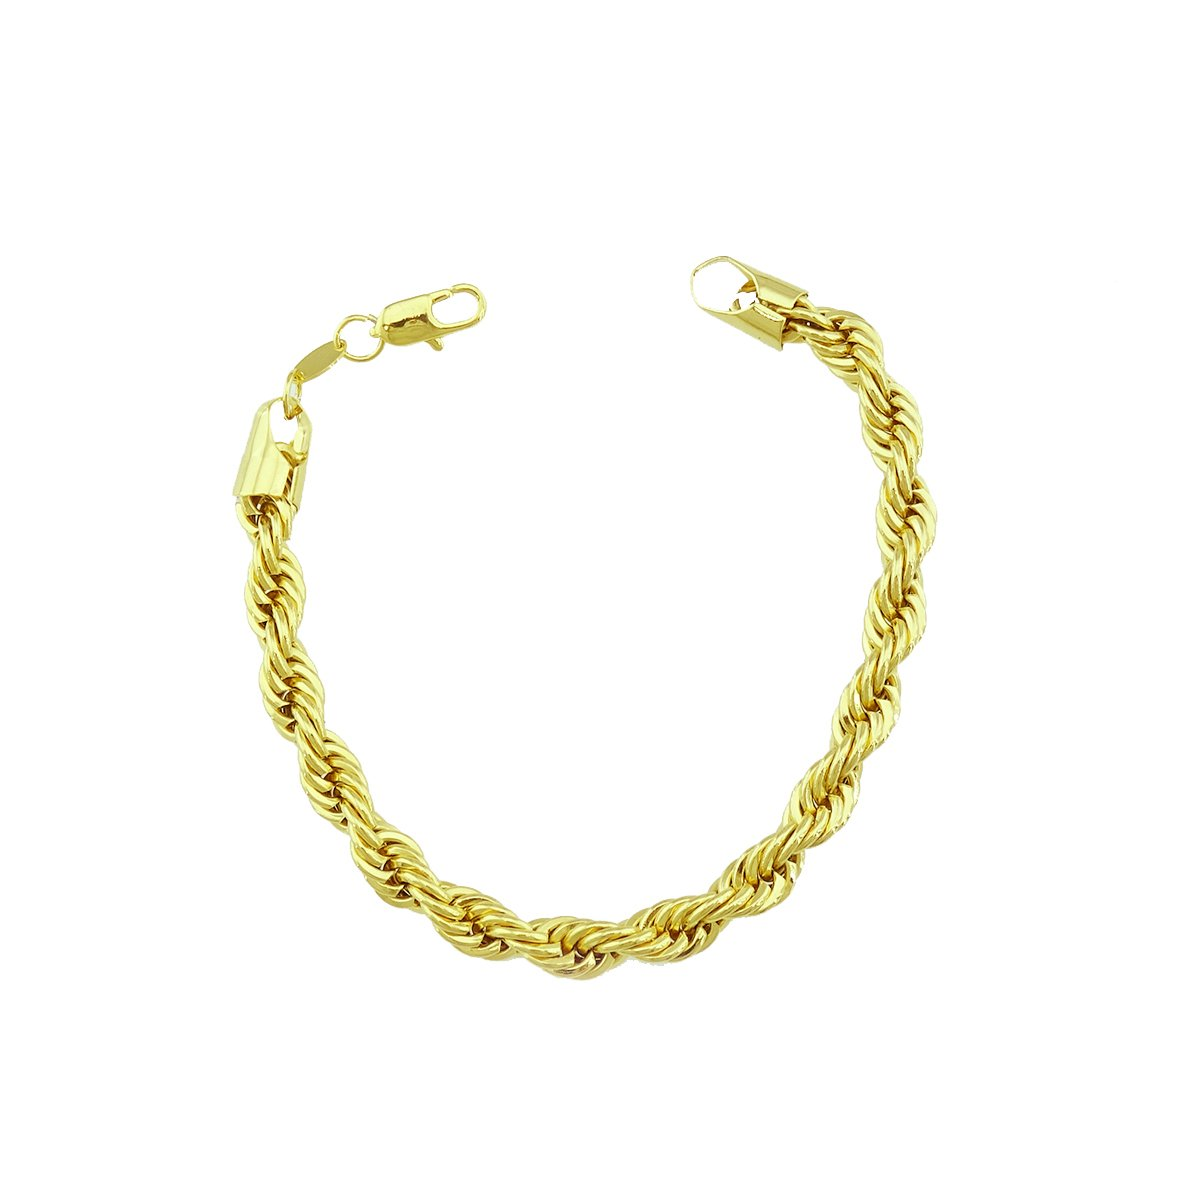 Passage 7 18K Real Gold Plated Rope chain Link Bracelet For Man 4mm Wide